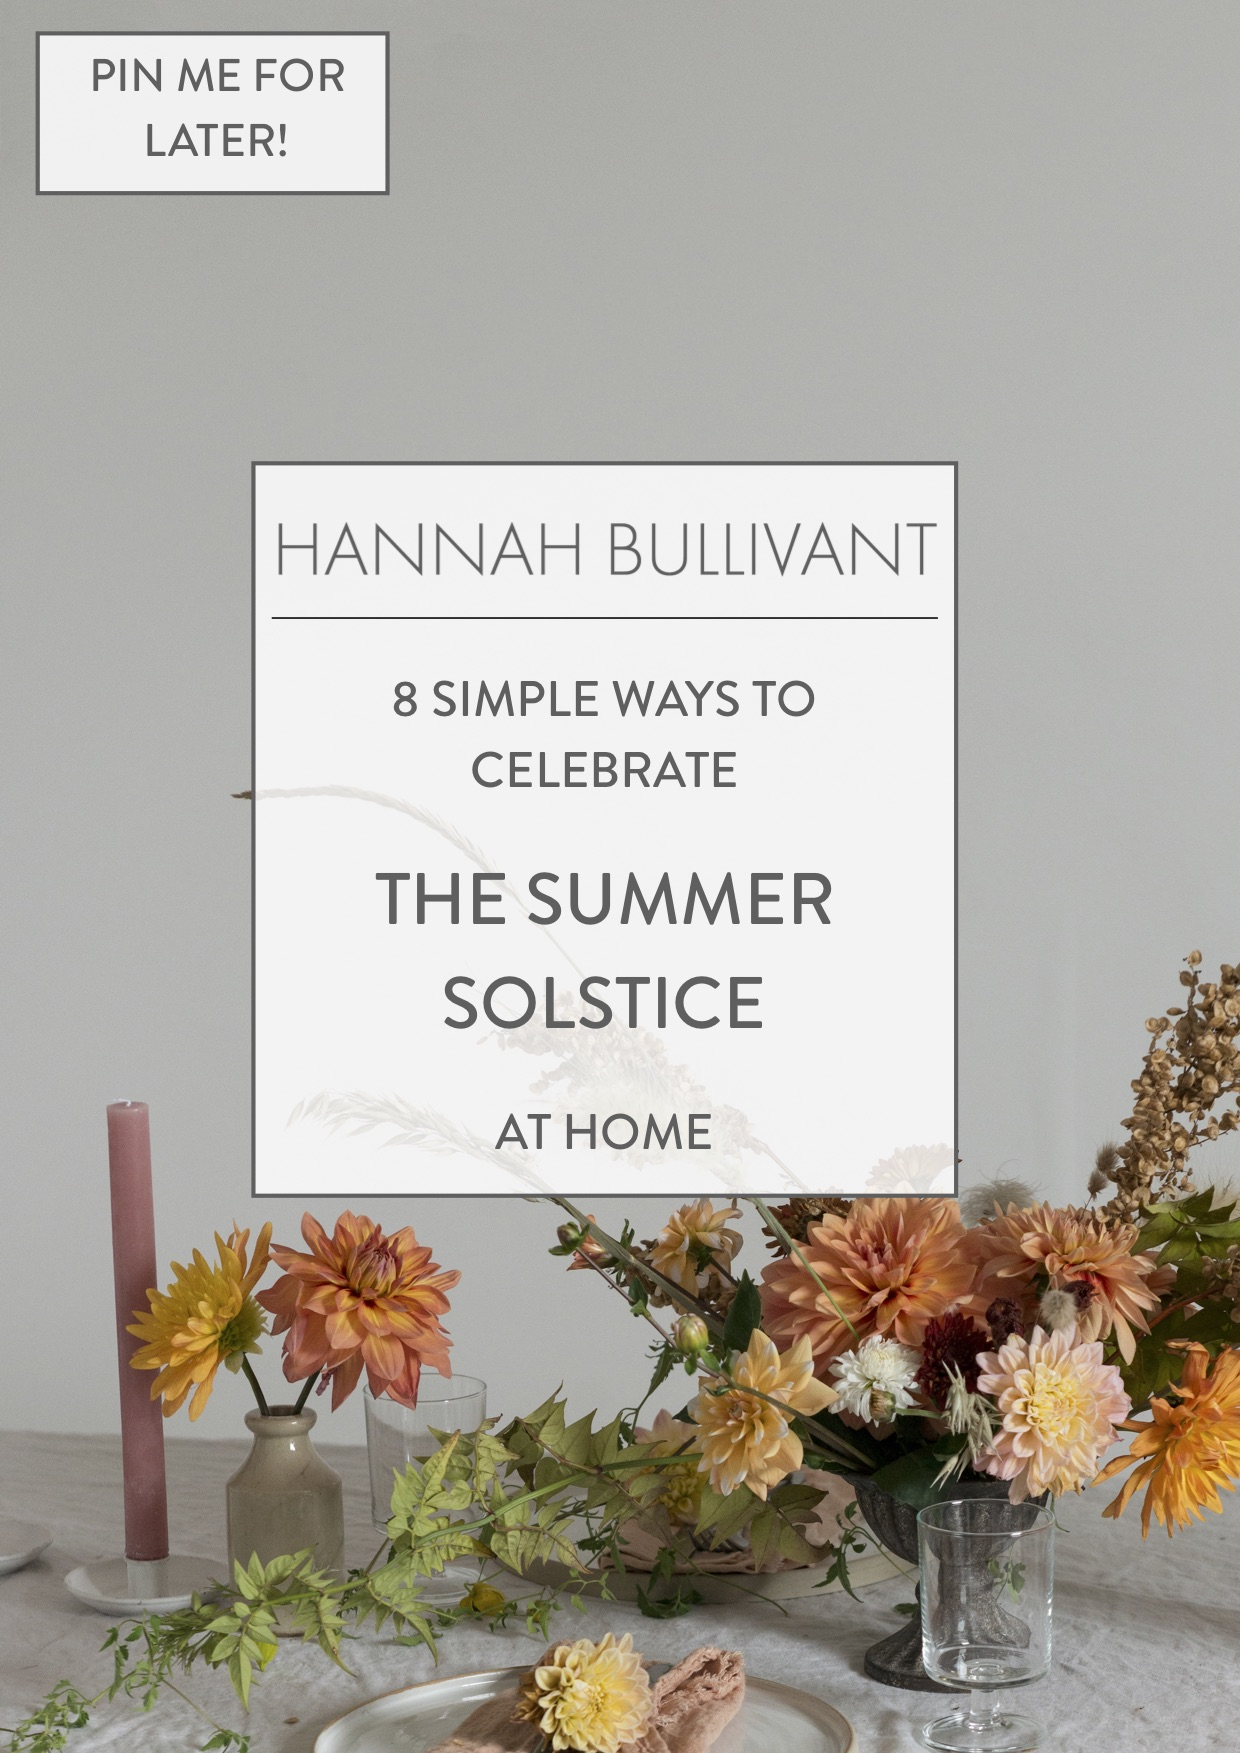 8 simple ways to celebrate the solstice at home, solstice journalling prompts, mid year review, solstice reflections, solstice celebrations at home, solstice dinner party